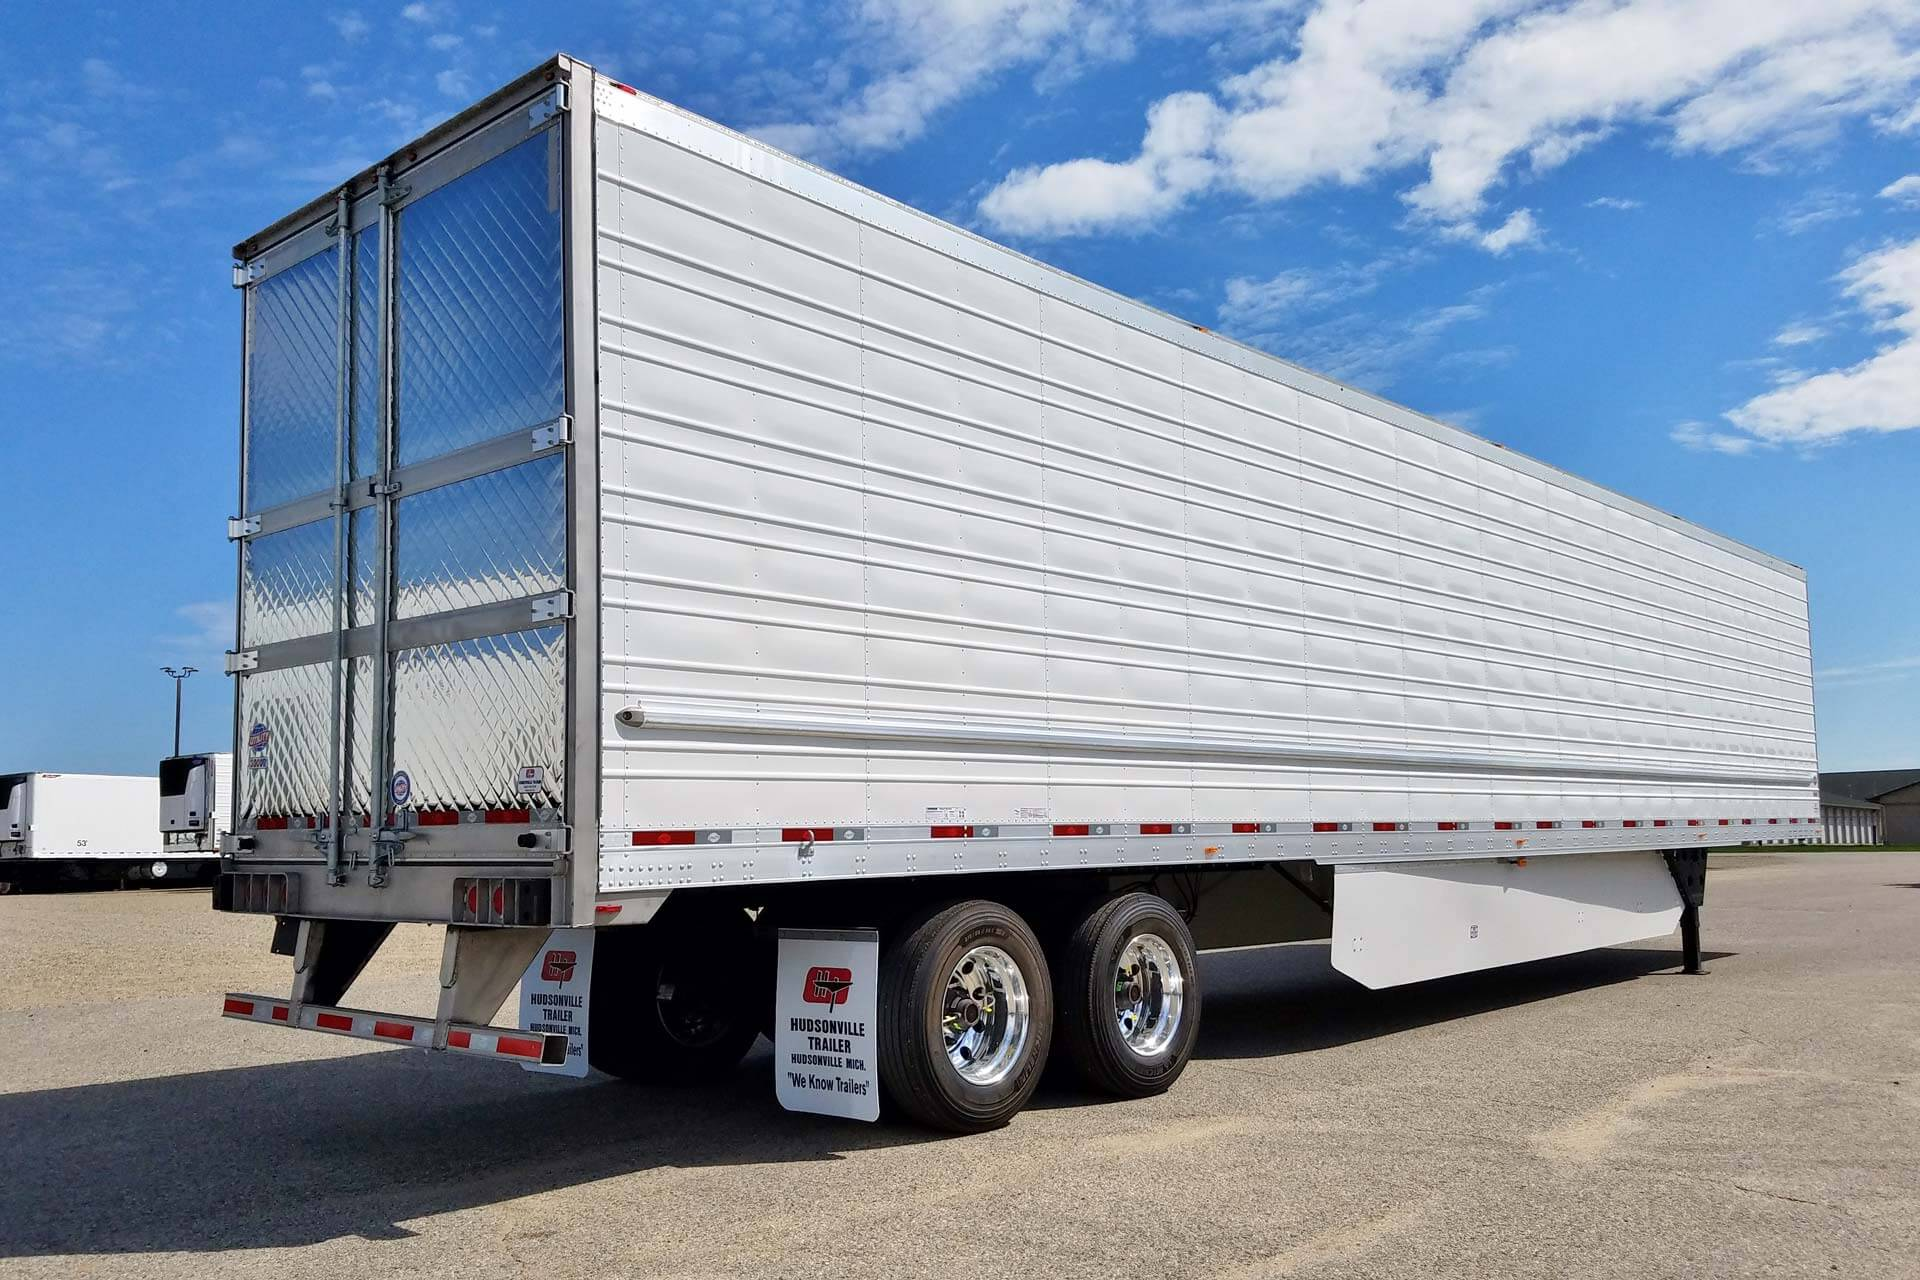 China High strength steel u shape tipping trailer hydraulic rear end dump semi bed trailer 6140132 furthermore Nigeria LPG Tanker Trailer LPG Truck 60260635127 furthermore Daf Trucks Nv 7 additionally  as well Sale 9786555 Nissan Auto Clutch Robot Clutchless Manual Transmission No Energy Loss. on semi truck dump trailers